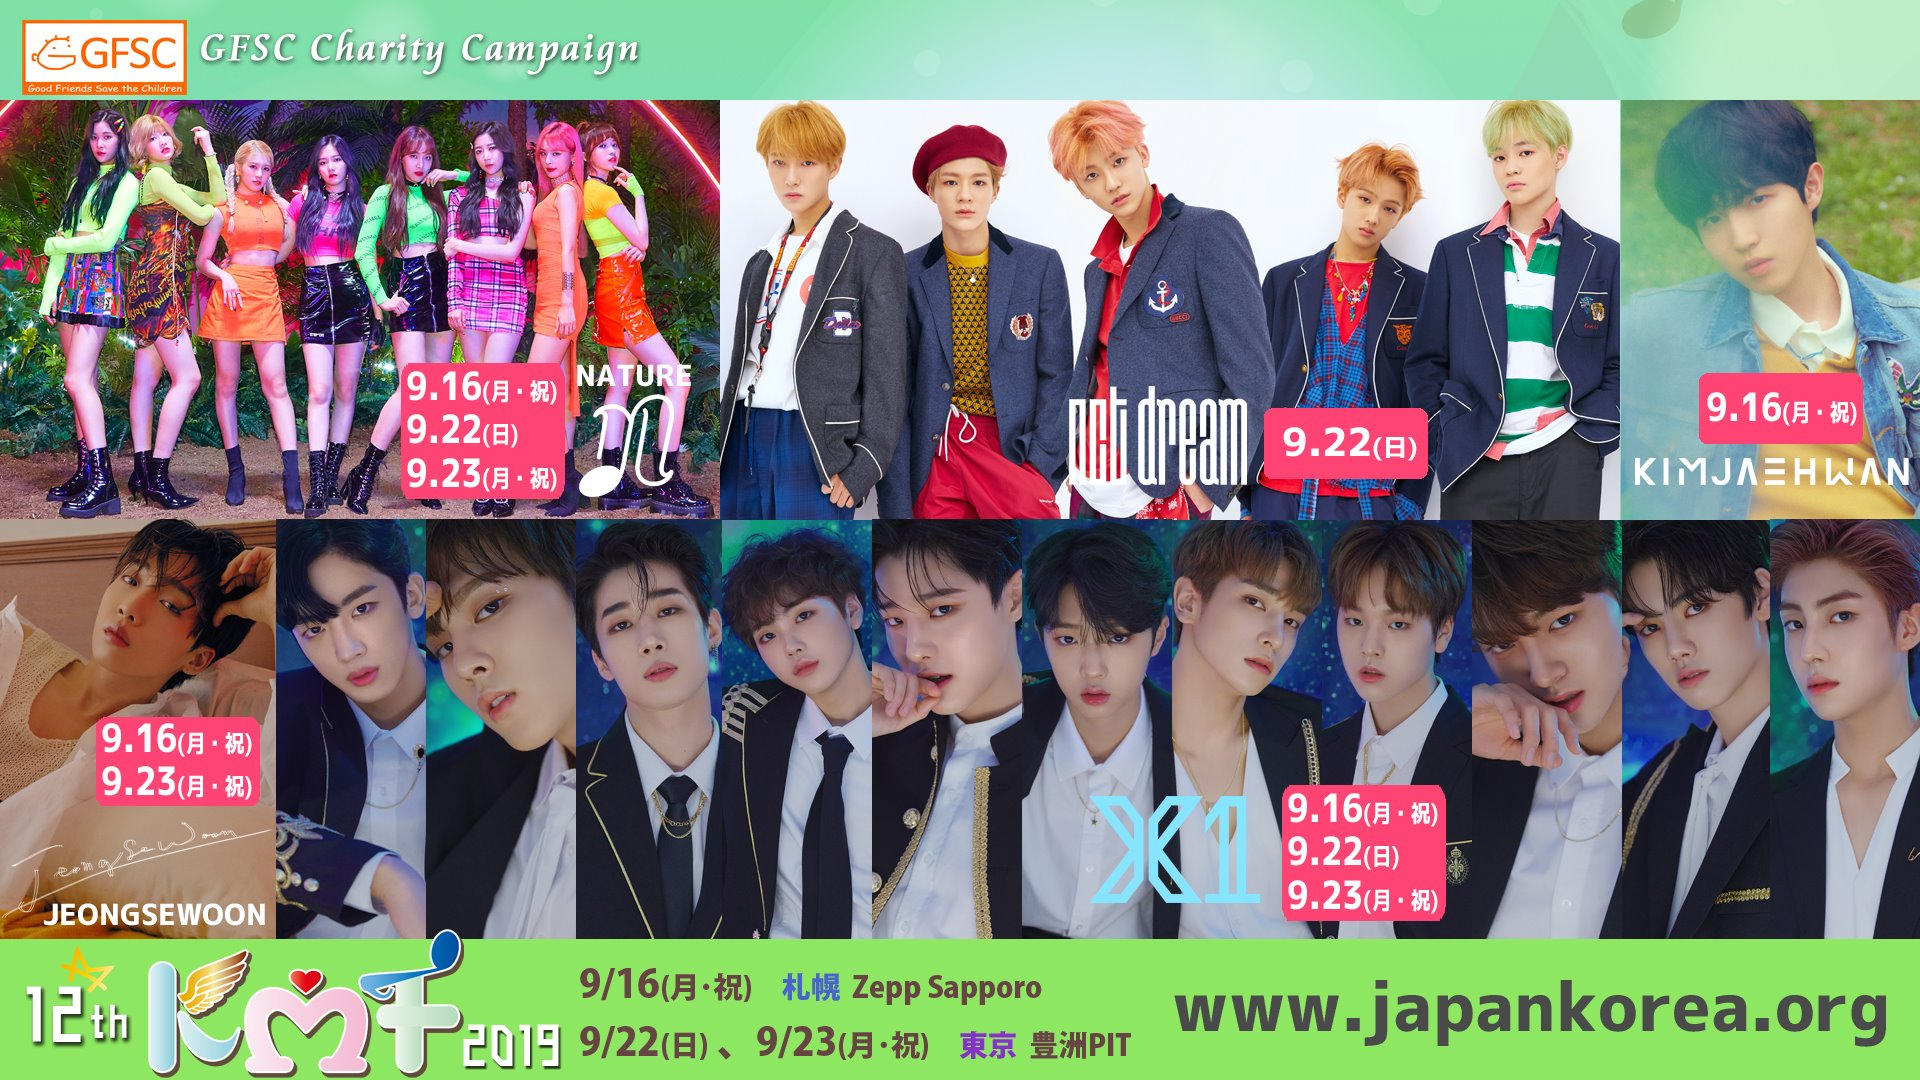 x1, x1 profile, x1 japan, x1 facts, x1 height, nature, nct dream, bts, kim jaehwan, jeong sewoon